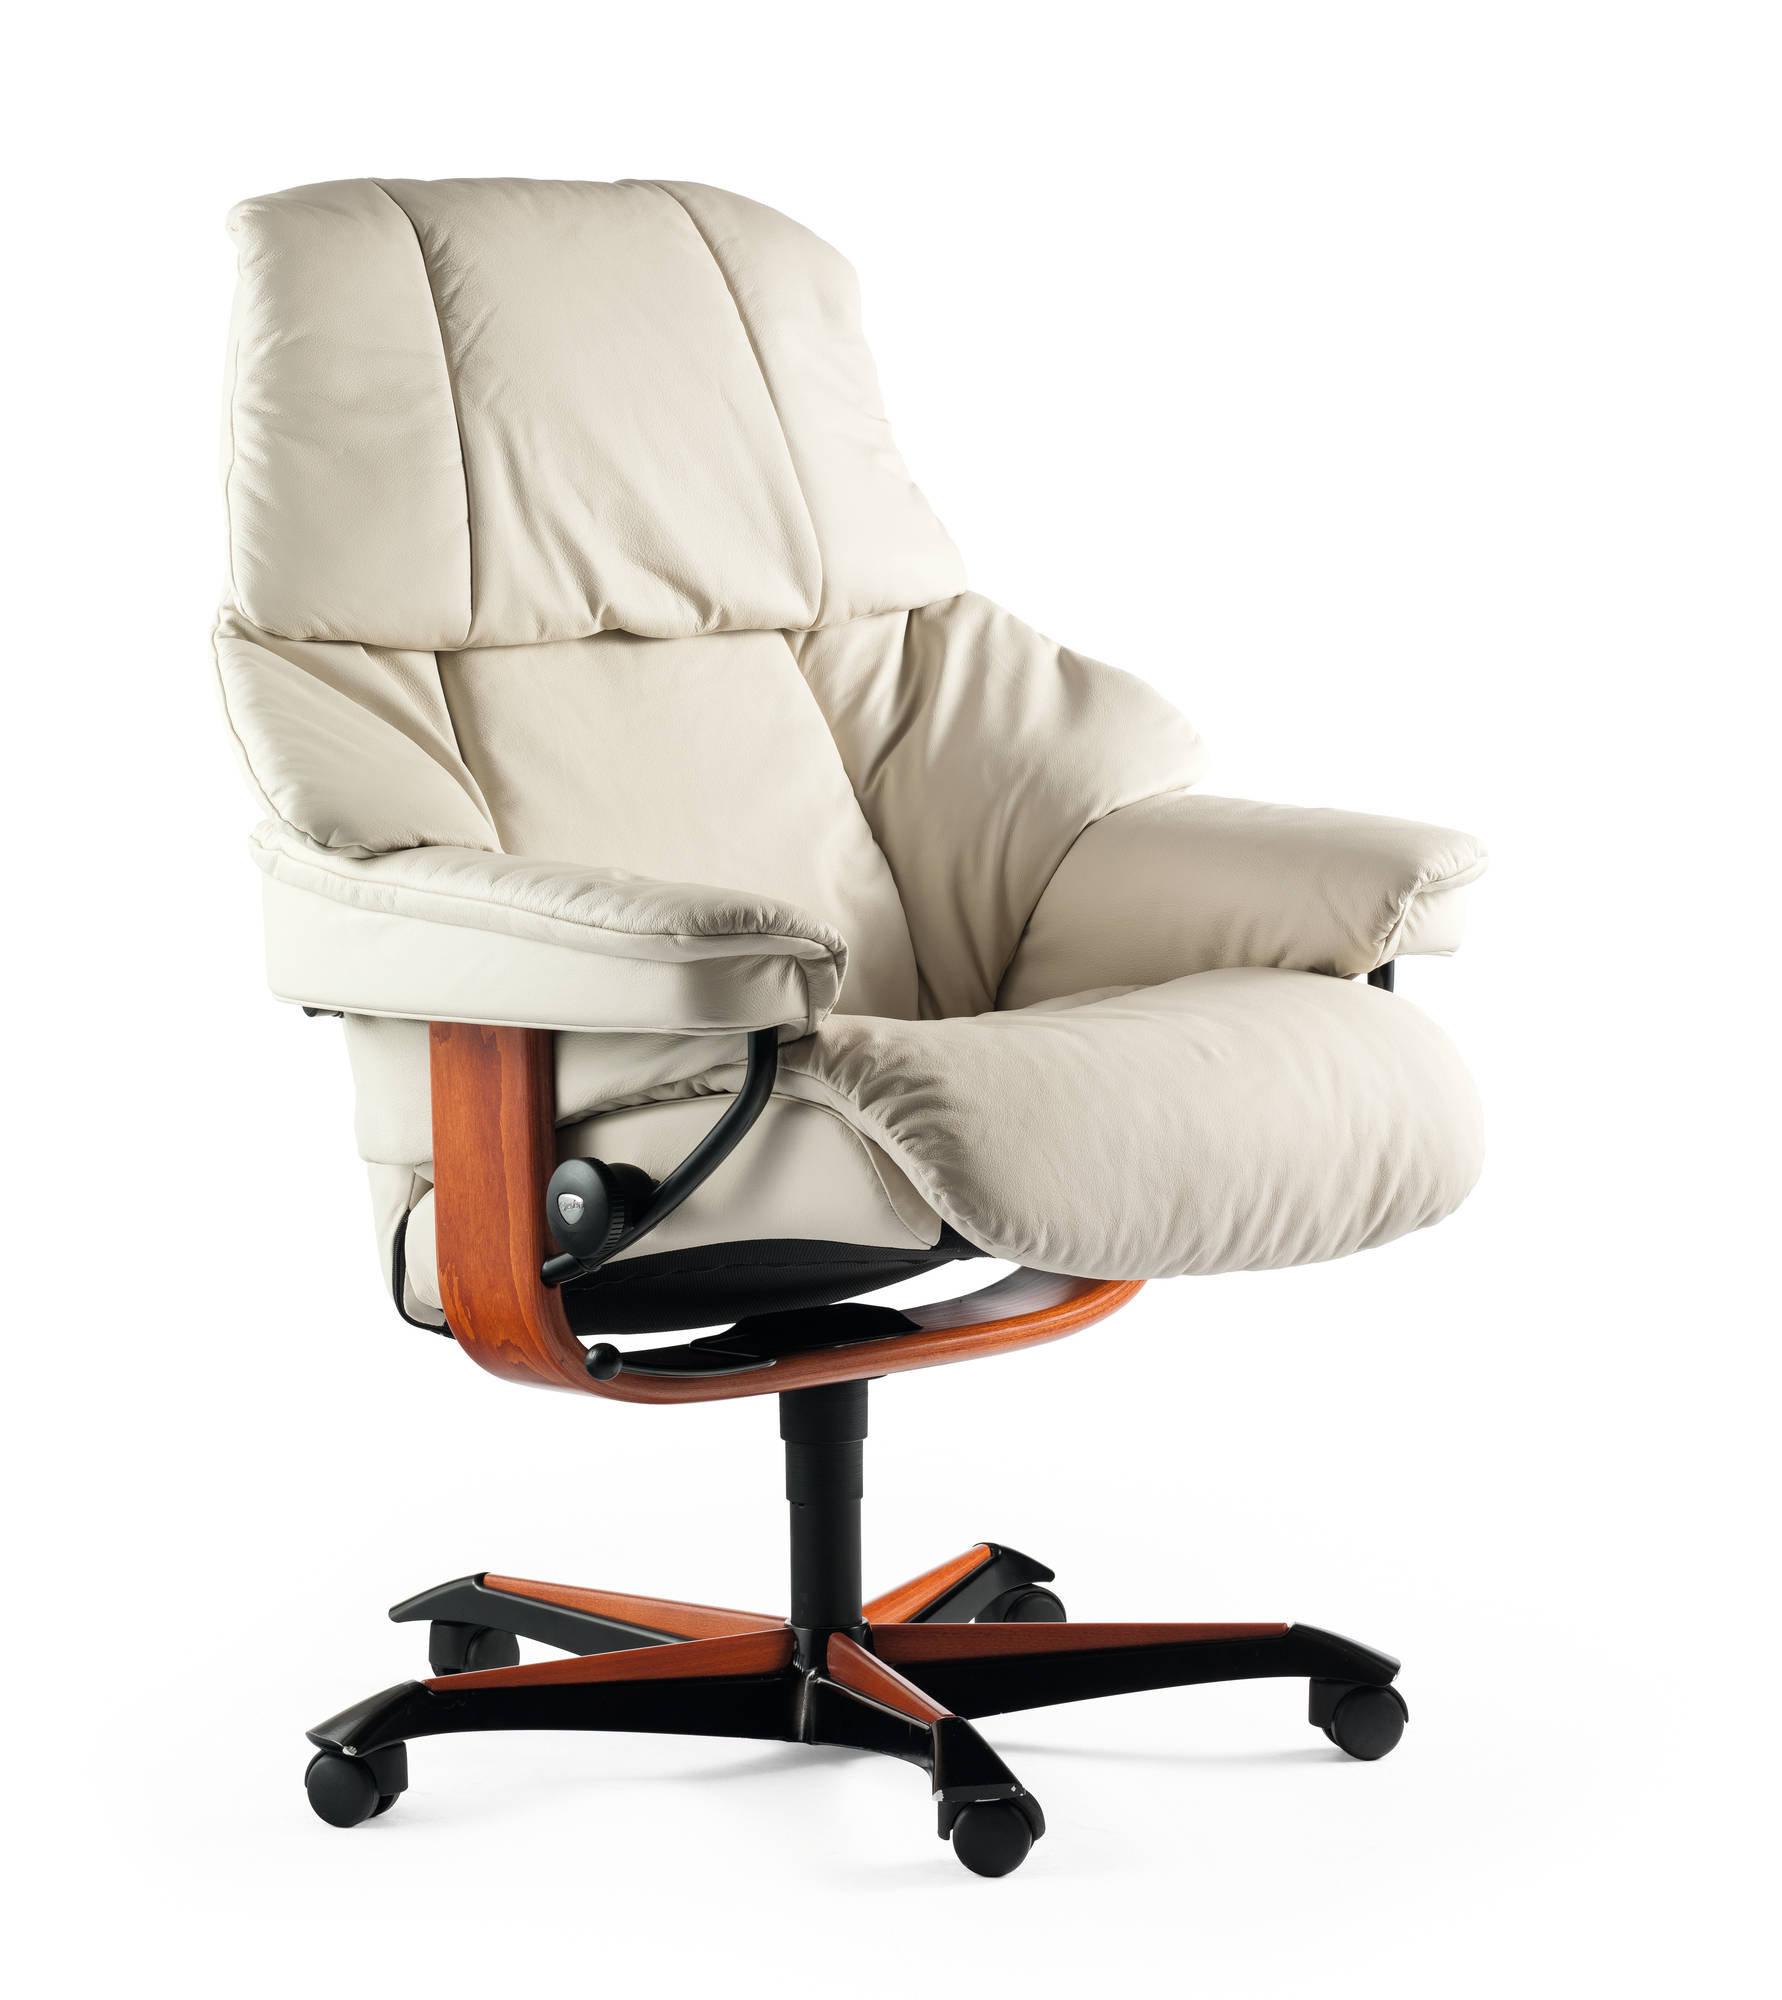 Reno Recliner fice Chair by Ekornes